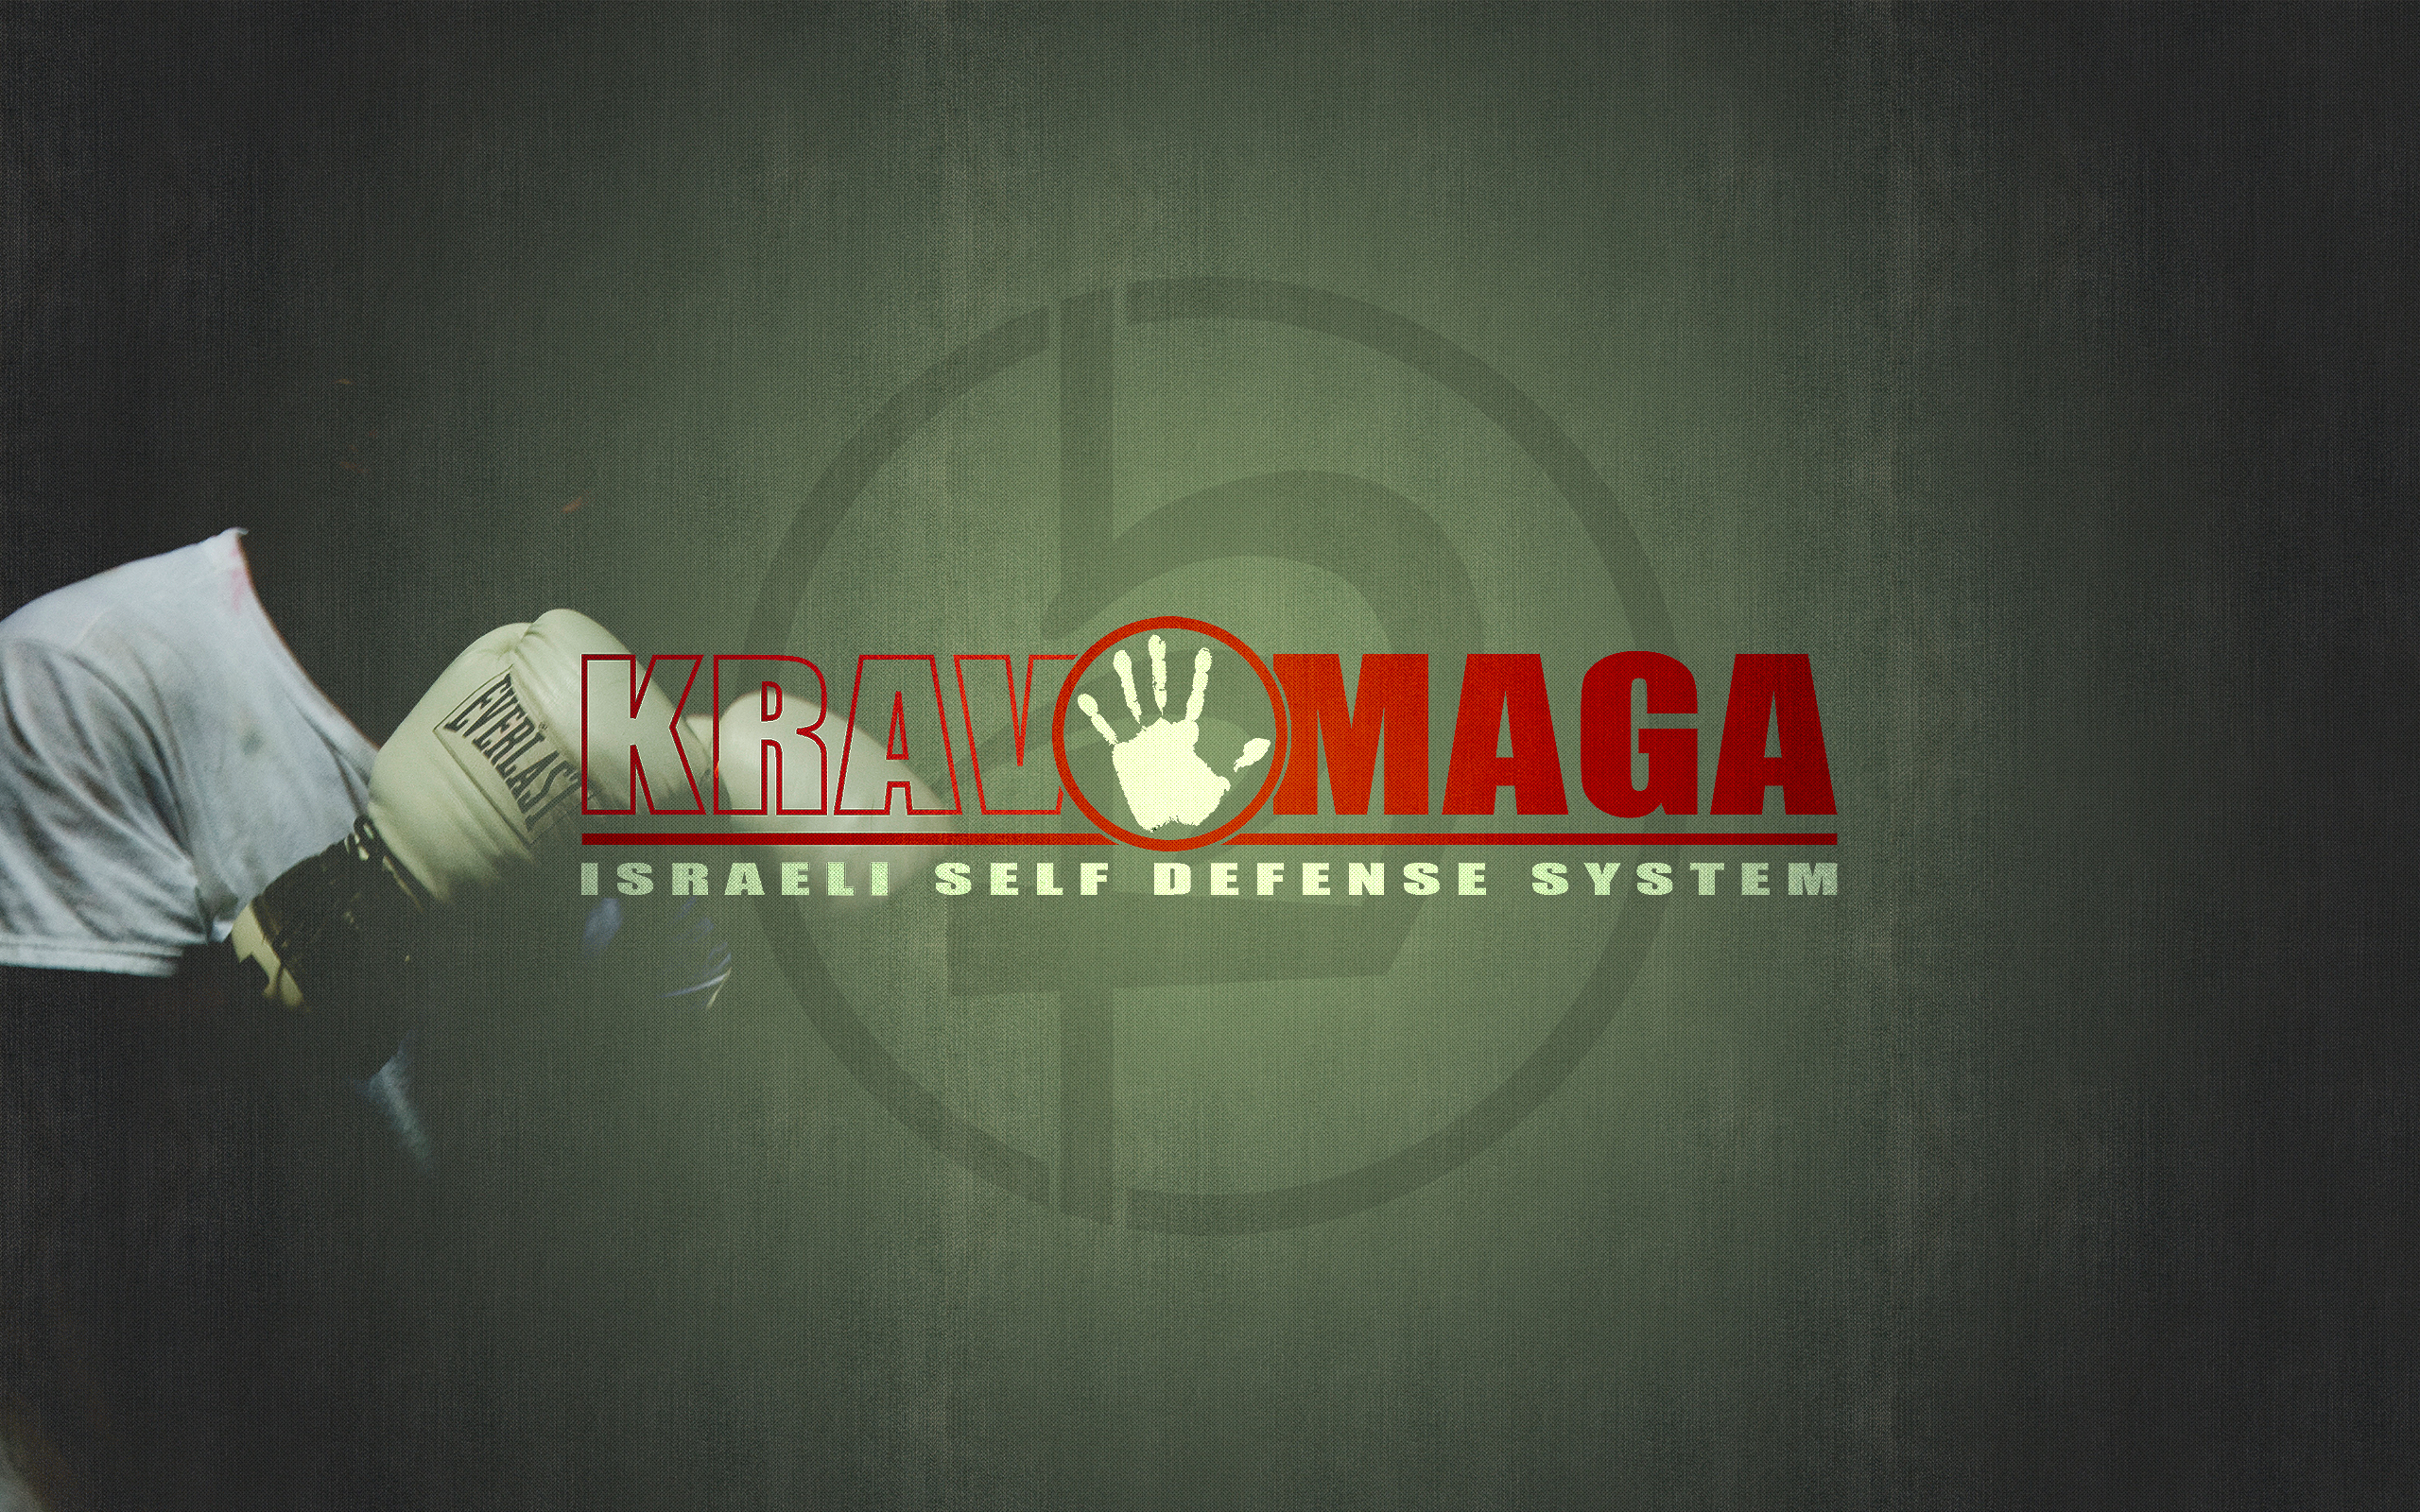 2560x1600 Downloads - kravmagagraz.at